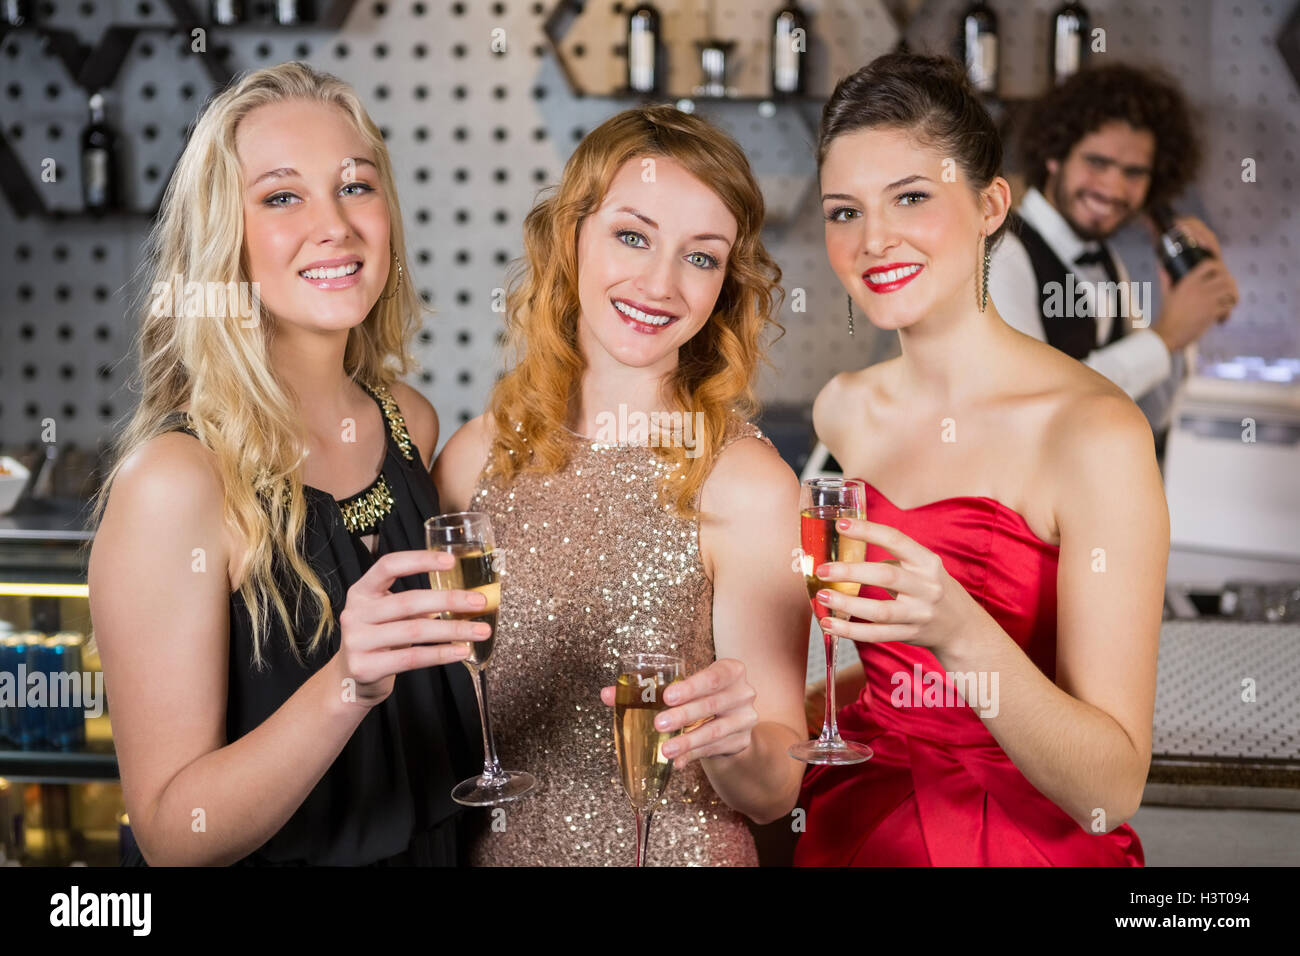 Three smiling friend having glass of champagne - Stock Image